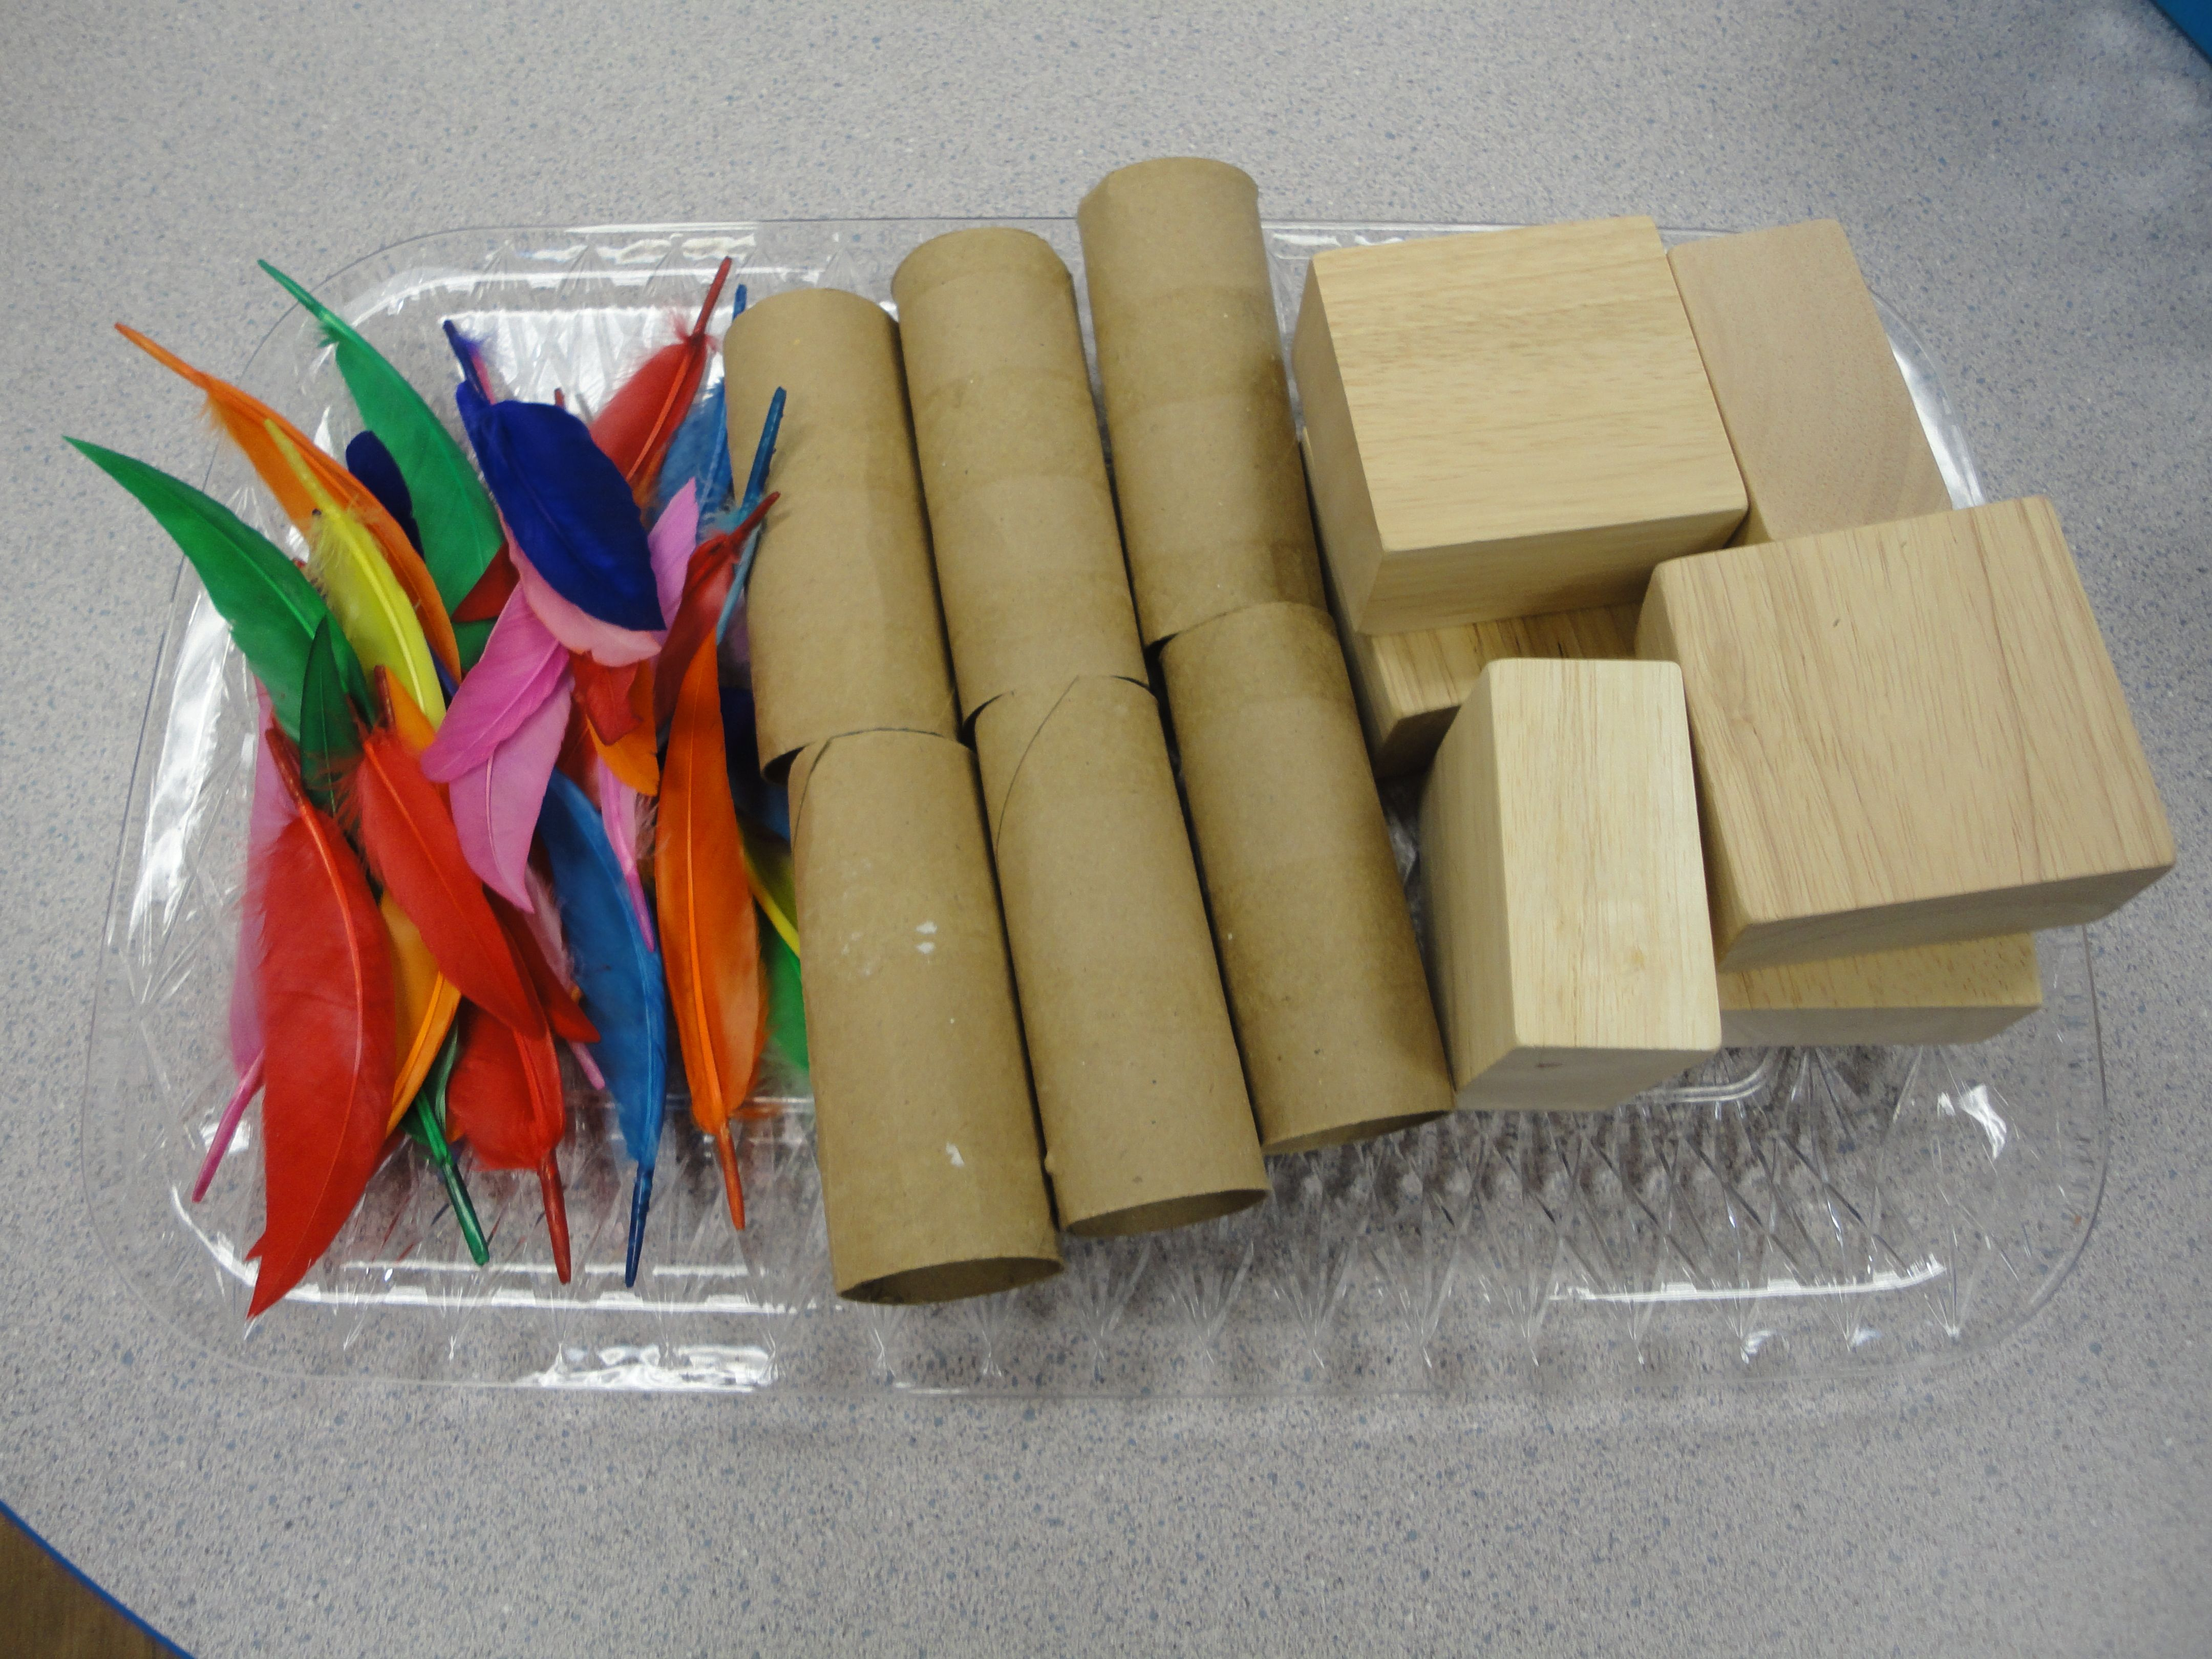 Provocation Tray for our Don't Blow Down The House activity. We listened to the story of the Three Little Pigs and then tried building our own houses with feathers, paper towel rolls, and blocks. Then we blew at them to see if they were strong enough to keep standing. NAEYC Standard: 3.4e.3 Energy and Power Technologies